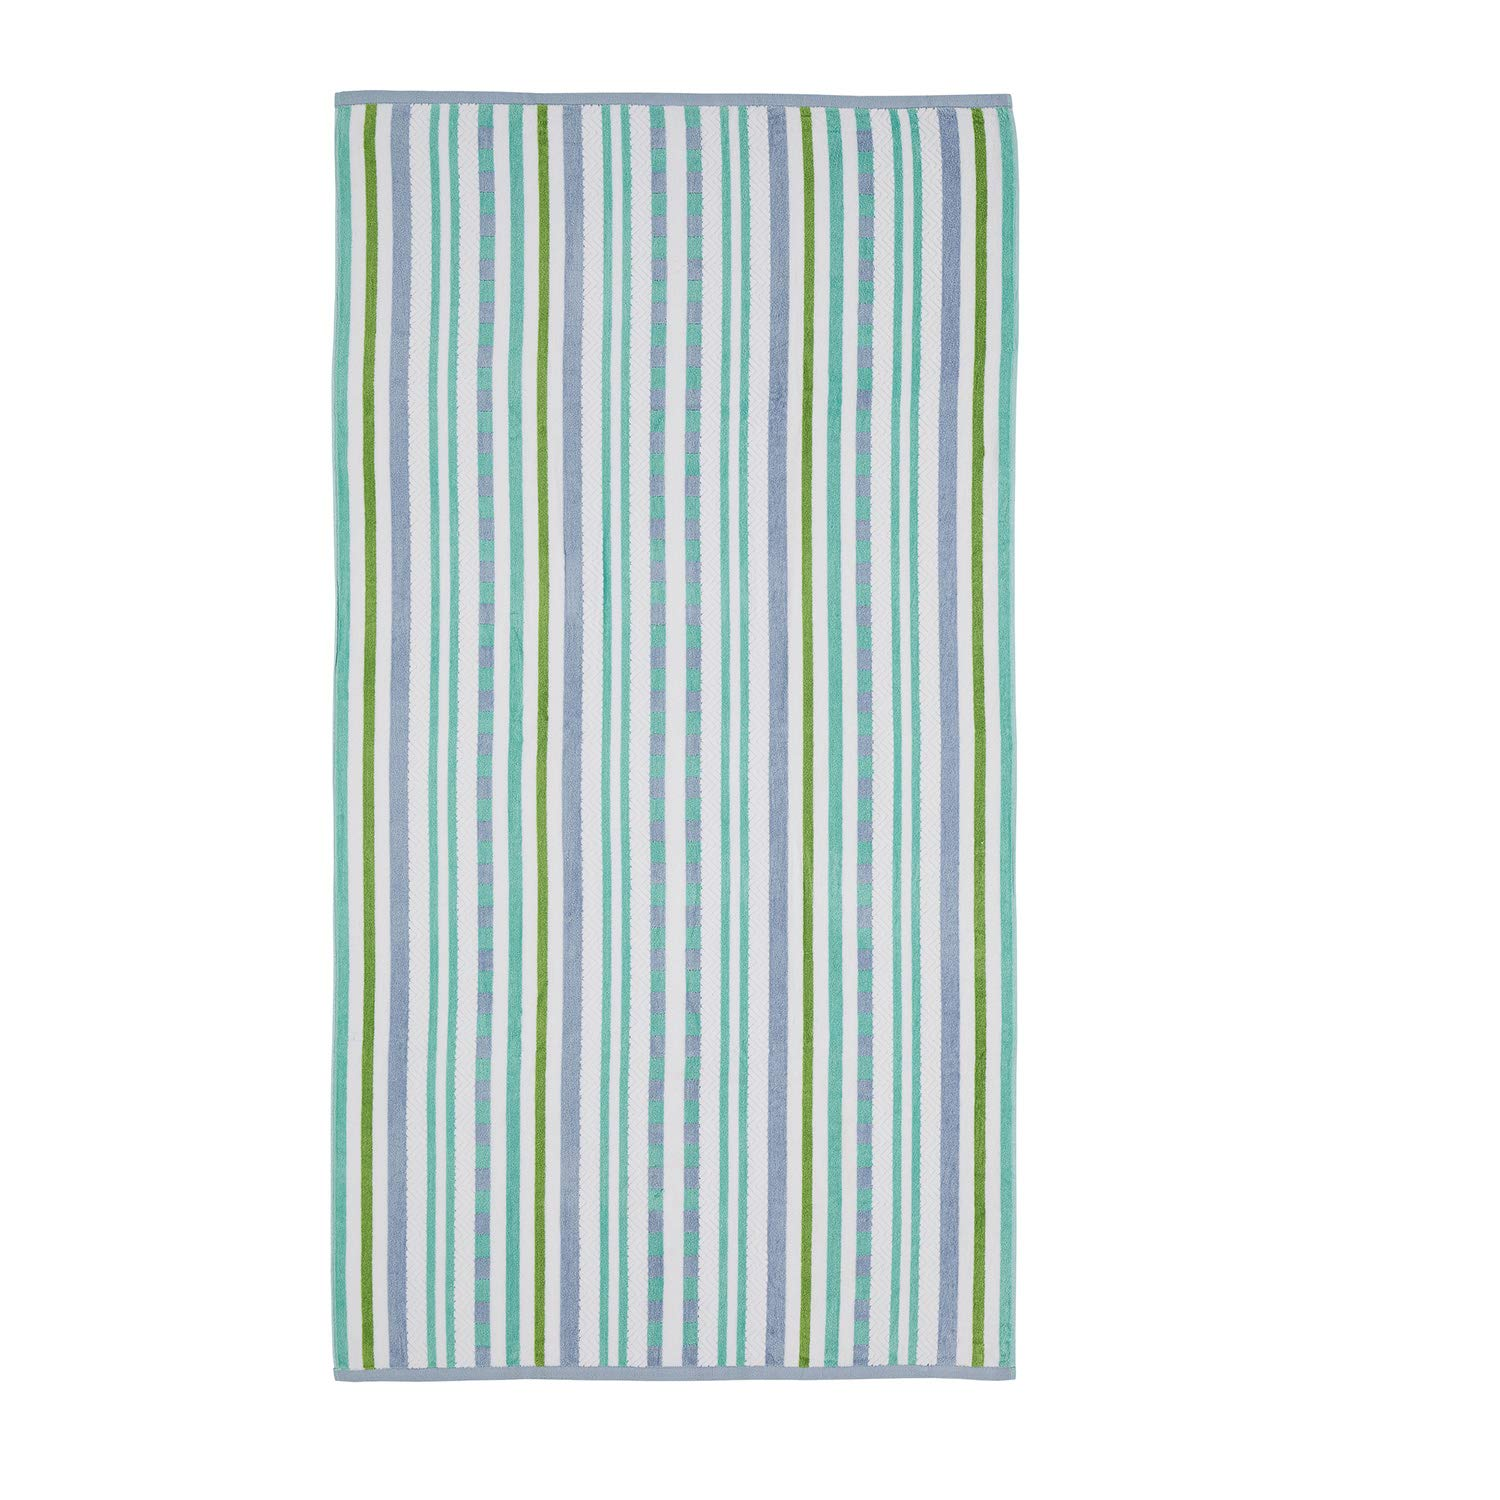 Superior 100% Cotton 550 GSM, Soft, Plush and Highly Absorbent Stitch Textured Oversized Beach Towel (Set of 2)